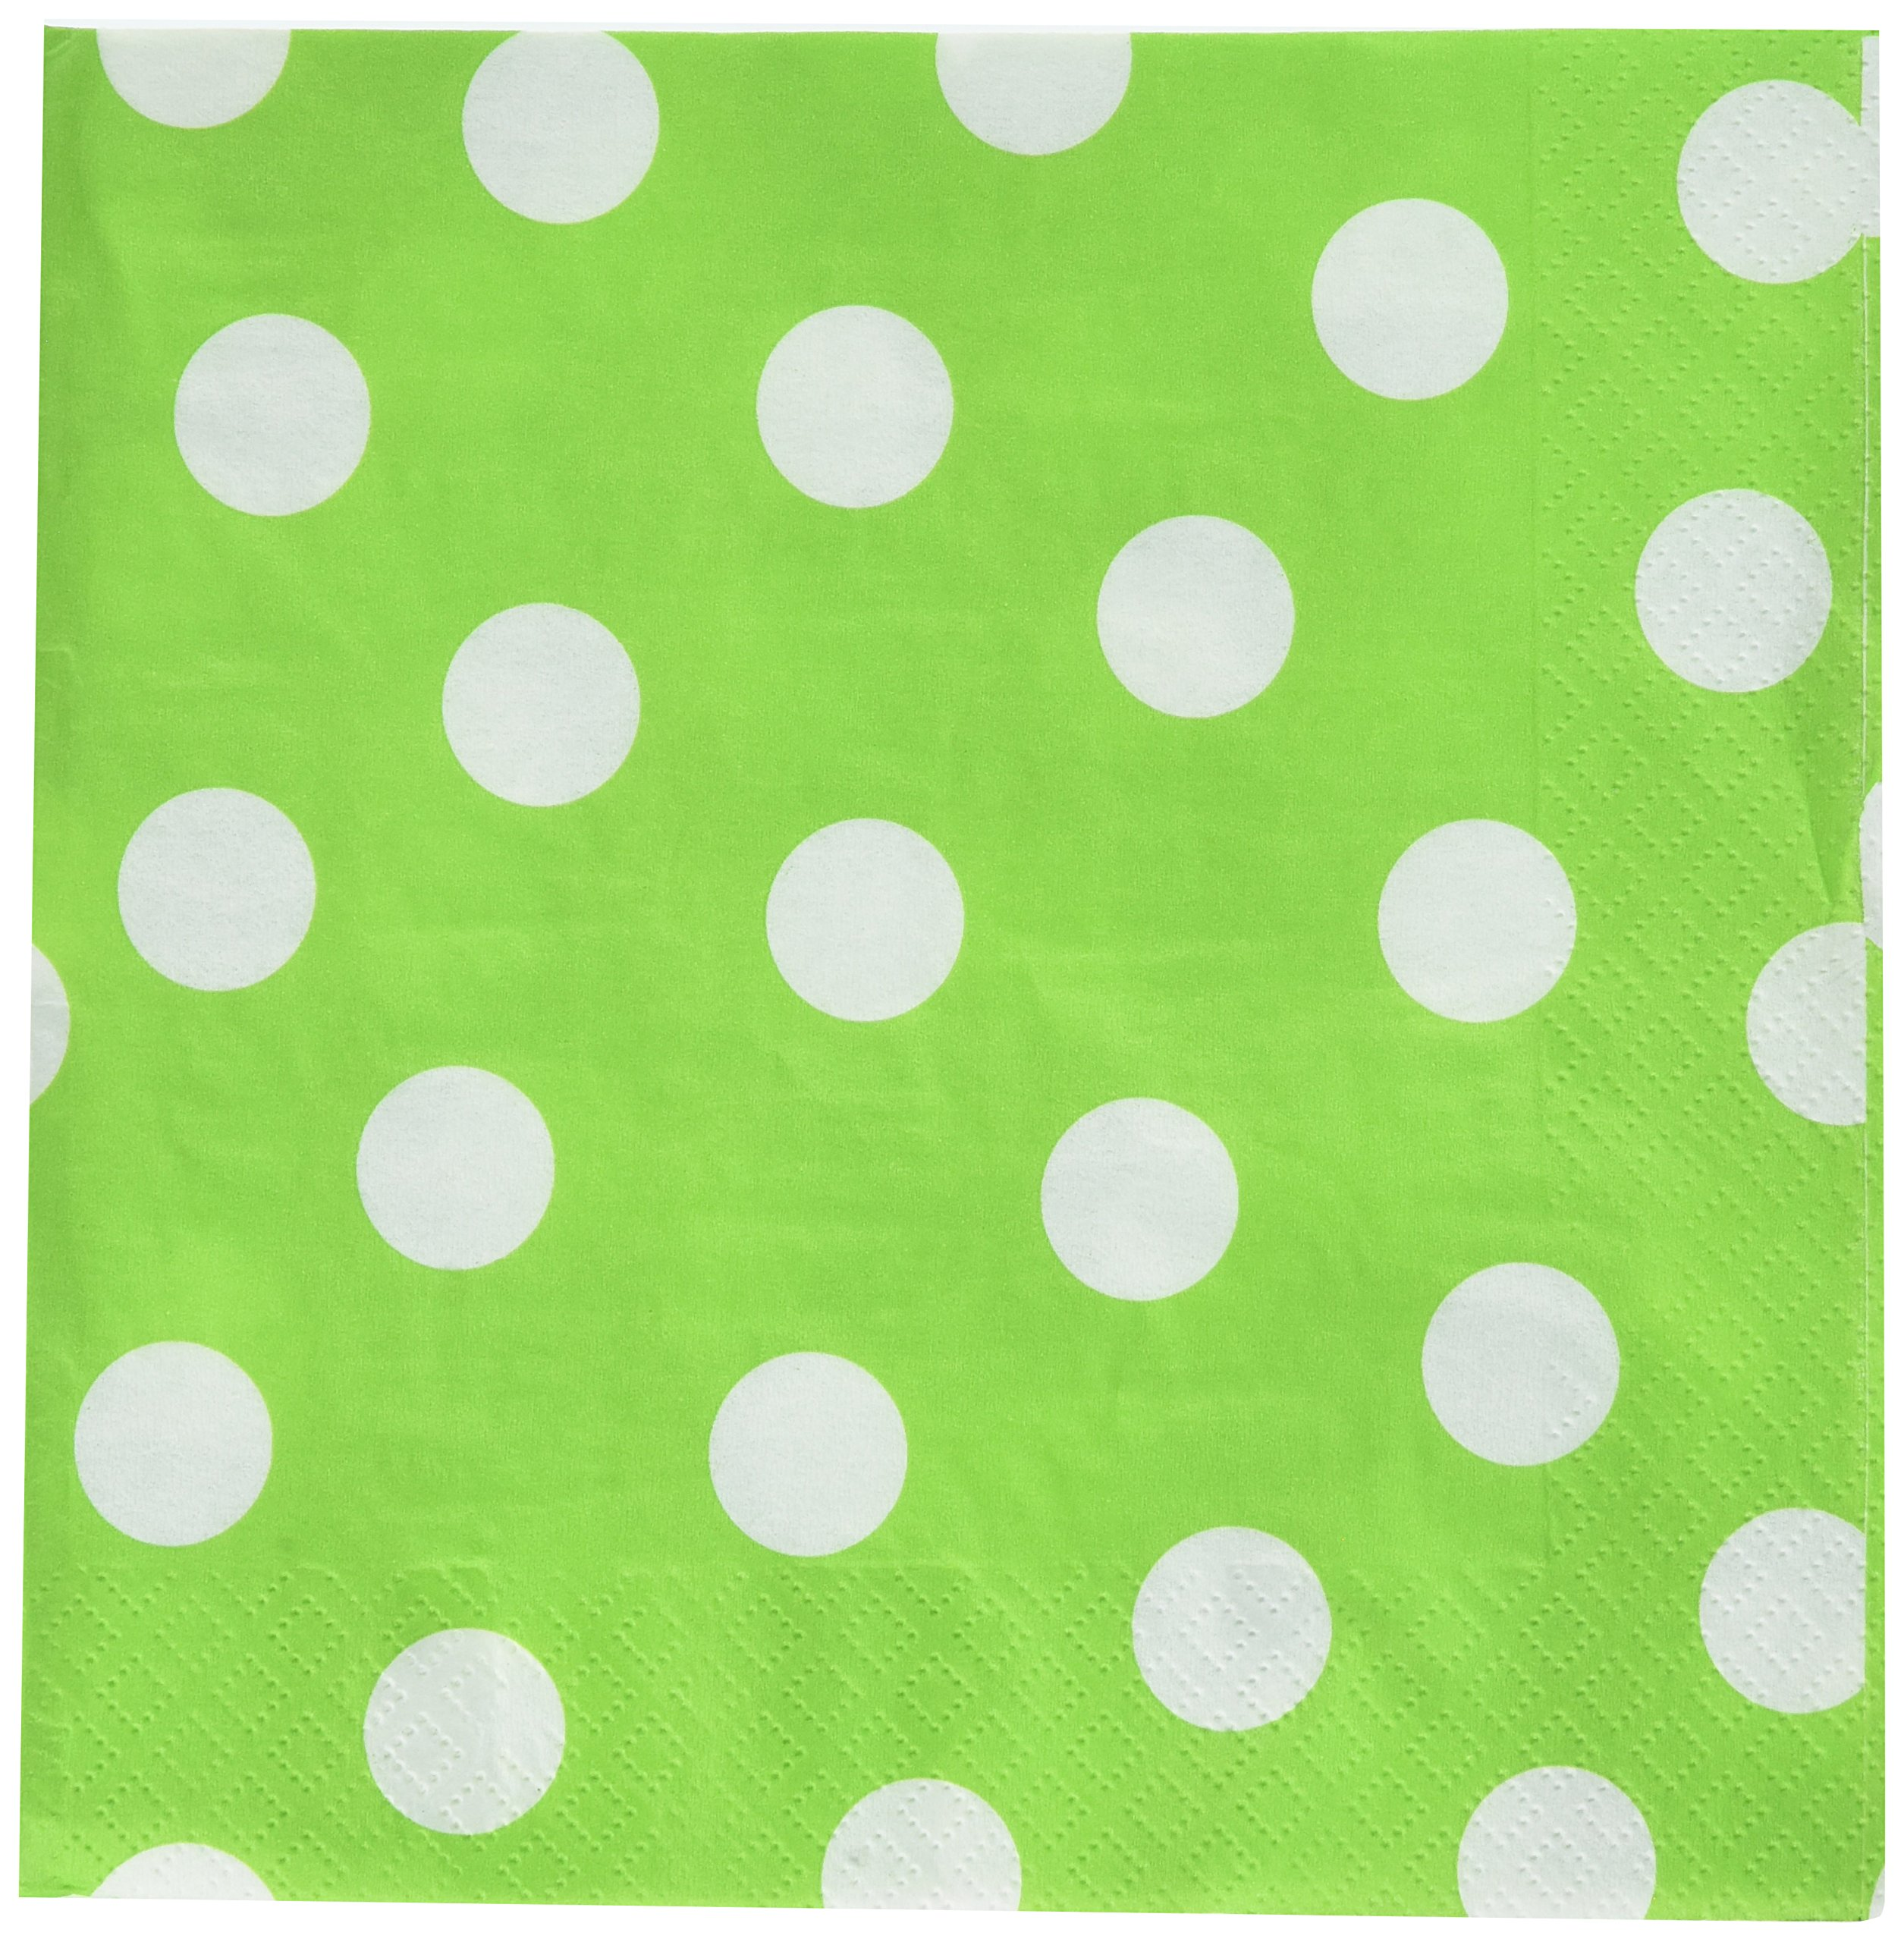 Amscan Luncheon Napkin Color Party Tableware, Saver Pack of 12 (Each Includes 16 Pieces), Made from Paper, Kiwi Green